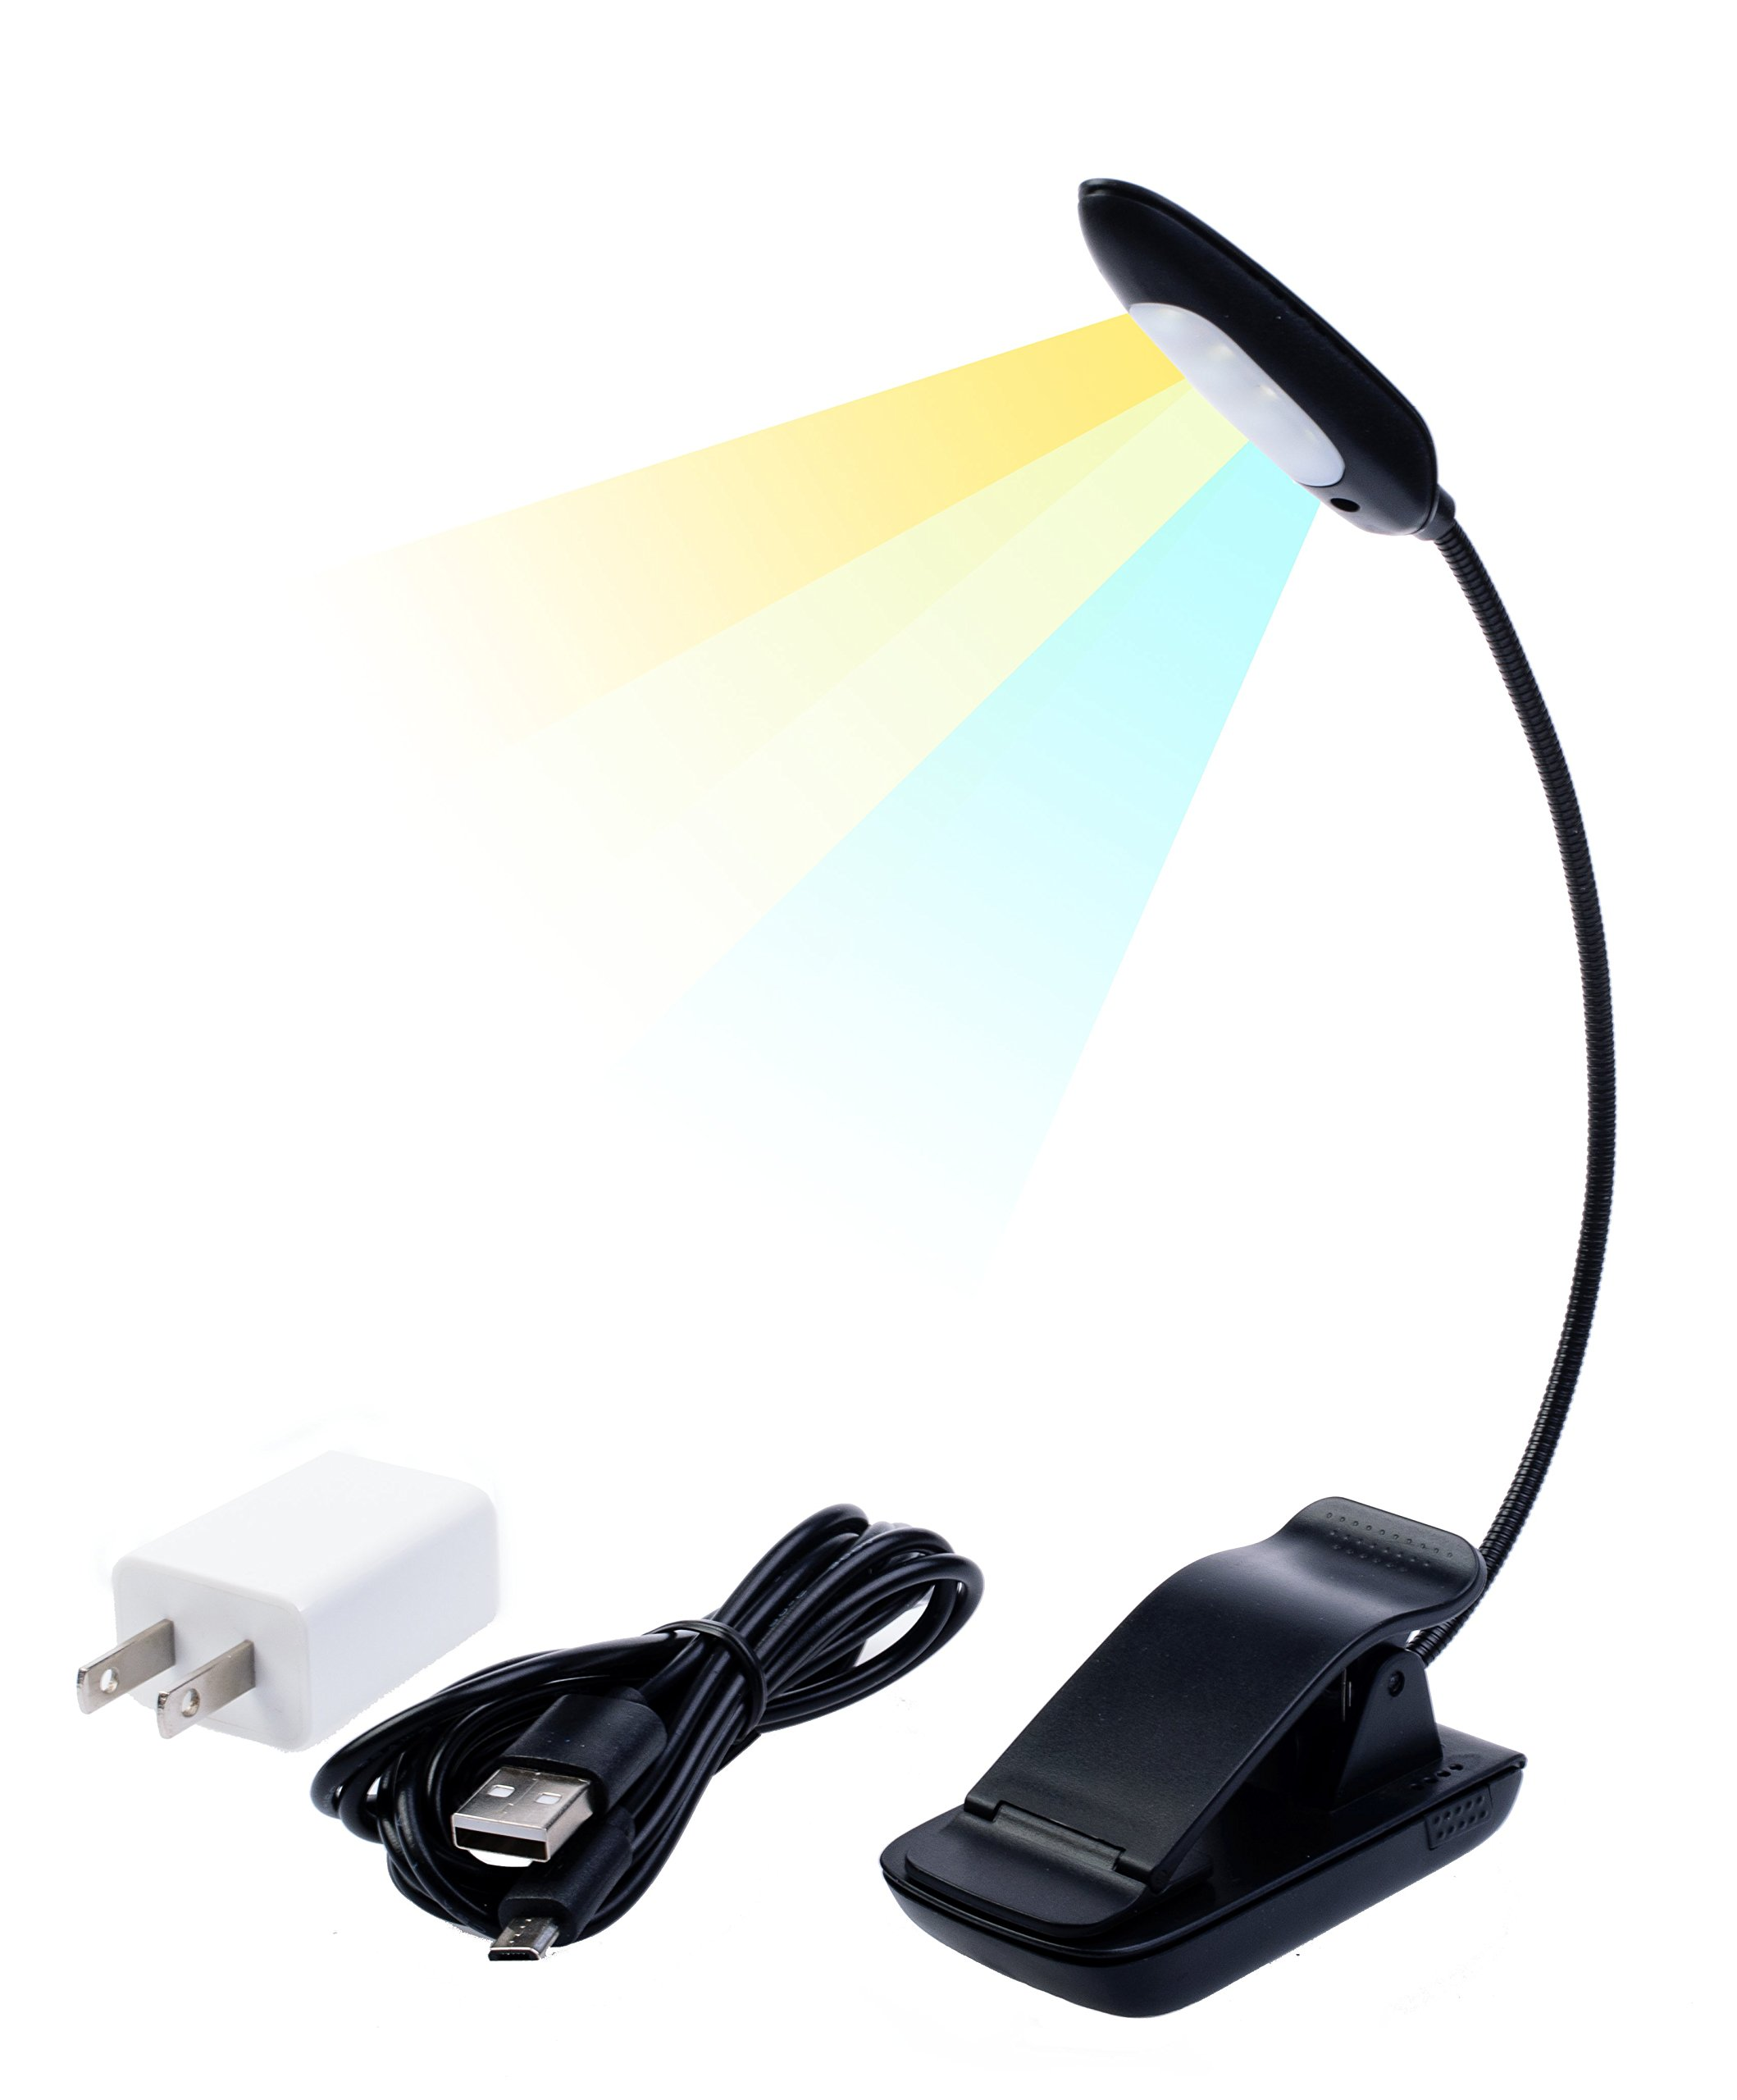 Eye Care Warm Book Light + Natural Light for Work + Cool Light to Study — 7 LED Portable Clip-On Lamp — 9 Settings — Reachargeable 70 Hours Reading — UL Charger 5V & 78in USB Cable — Bookworms Gift.